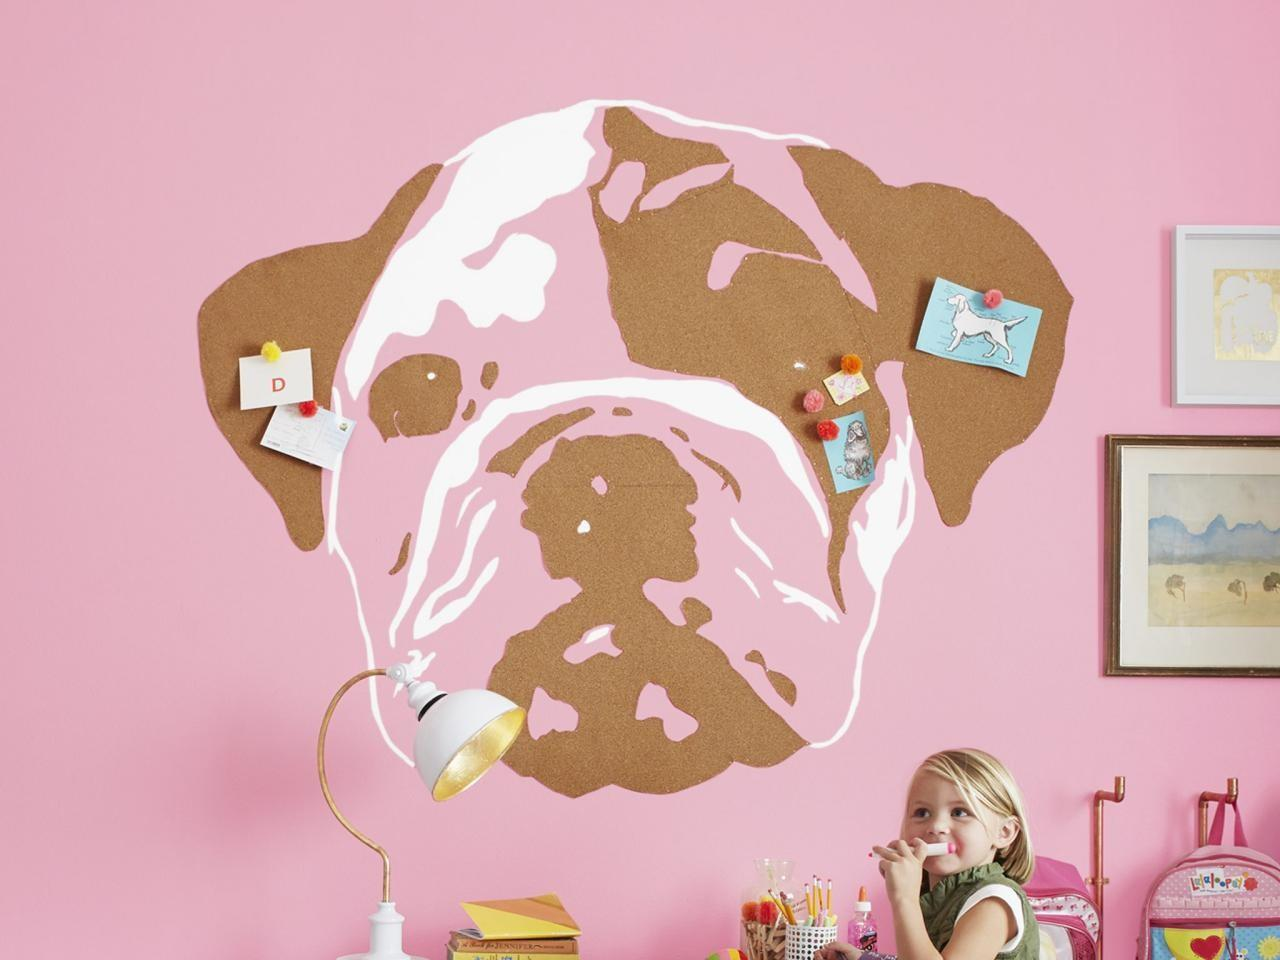 Diy Wall Art Projects Anyone Can Interior Design